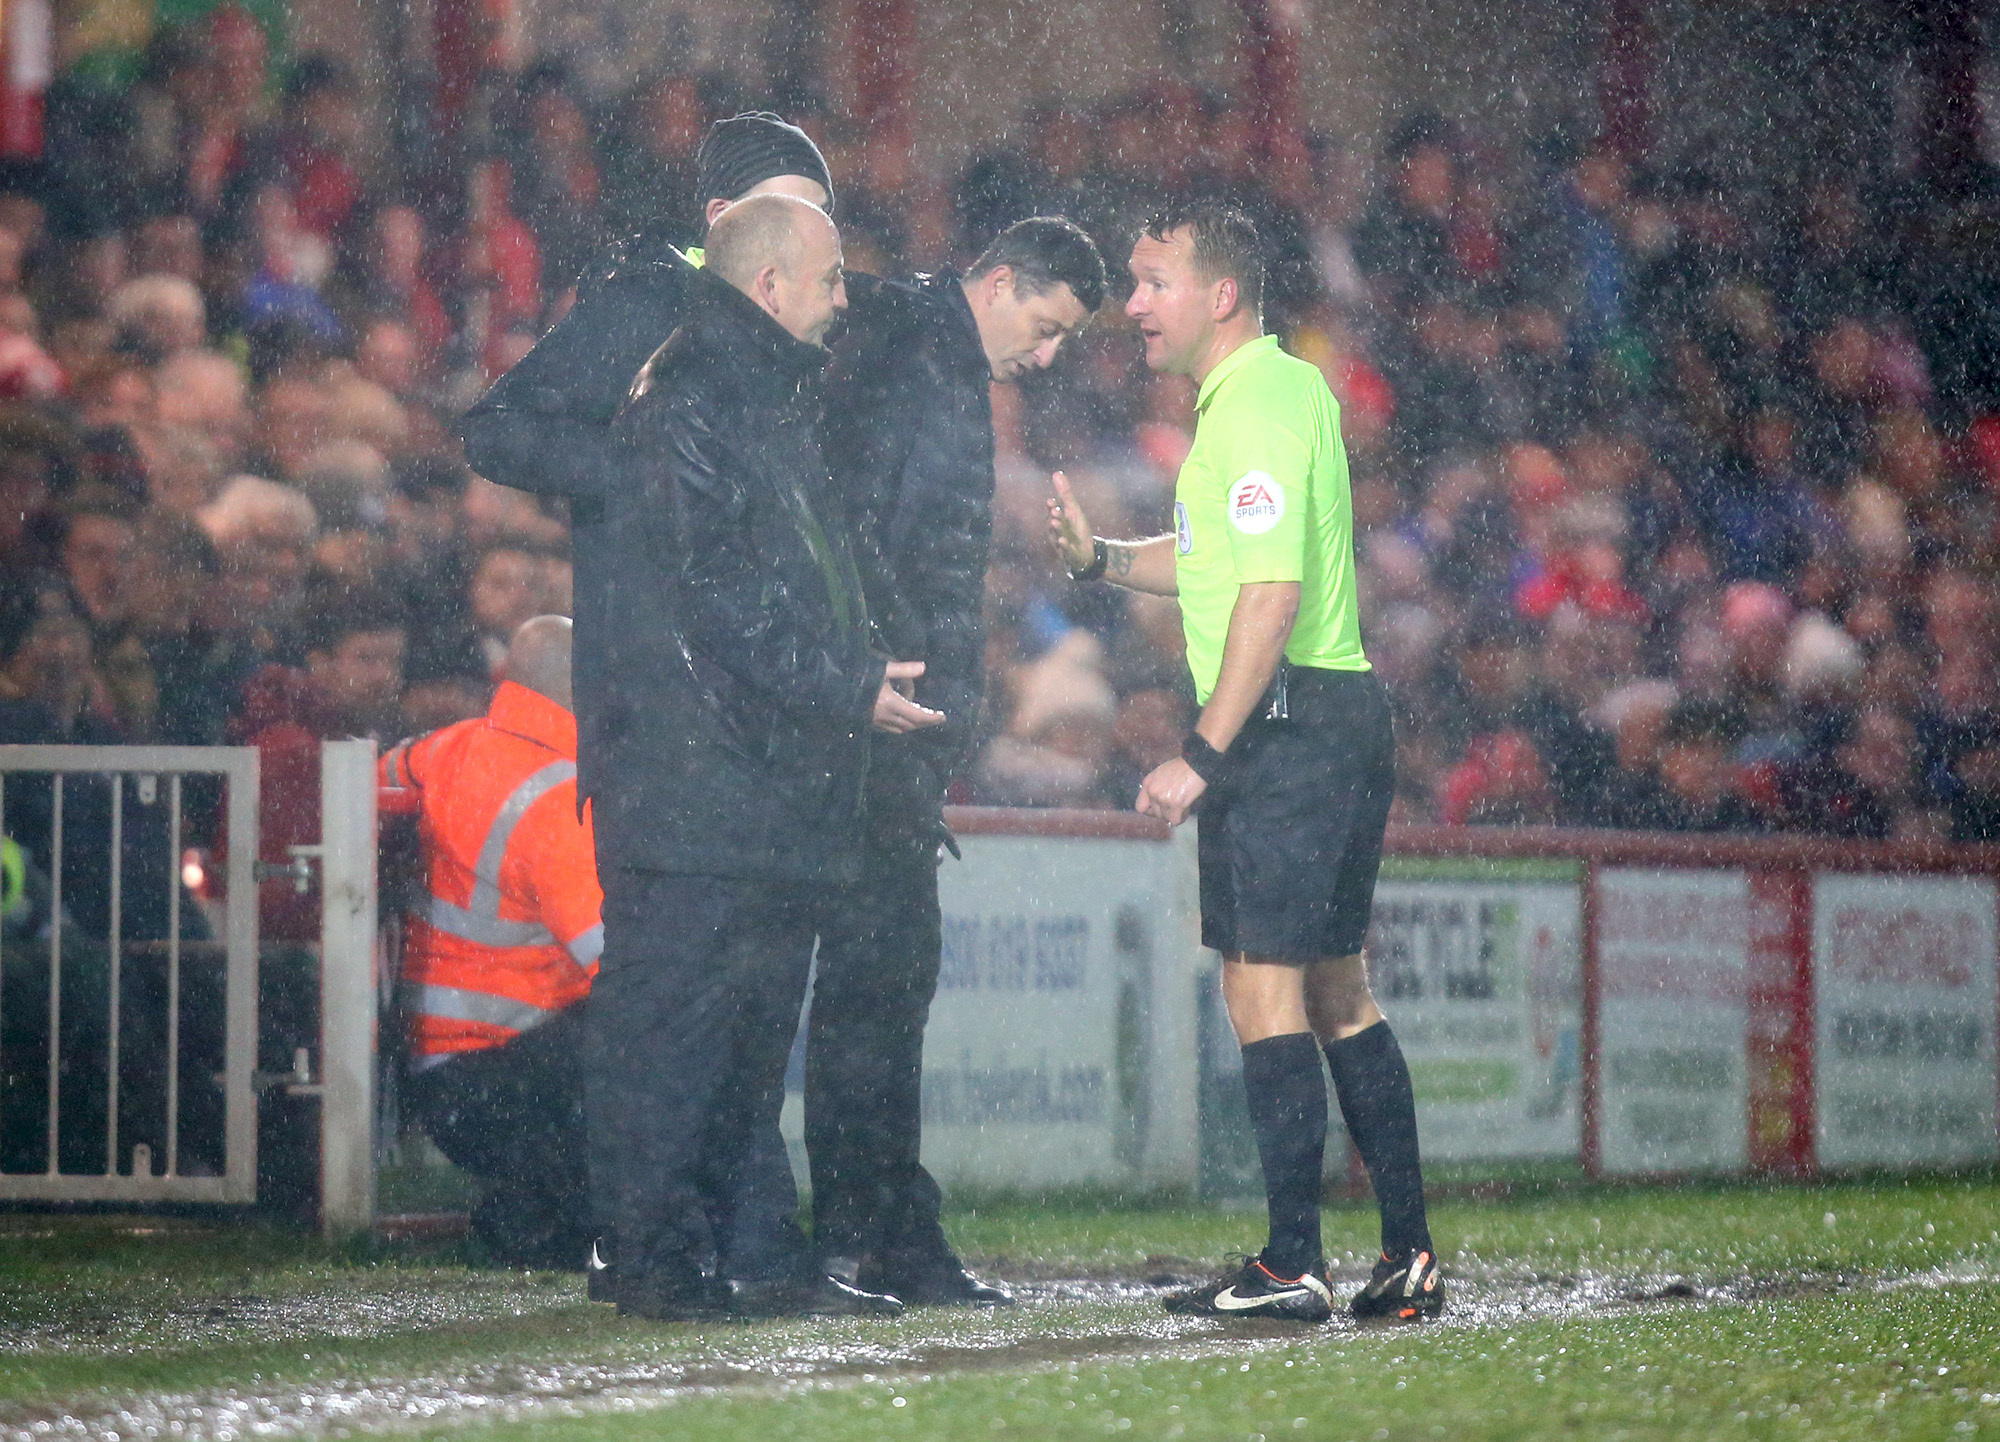 match referee oliver langford consults with managers and 4th official before allowing a few more minutes play .during the EFL  skybet league 1 Football match between Accrington Stanley and Sunderland  at the WHAM Stadium, Accrington   on the 8th december